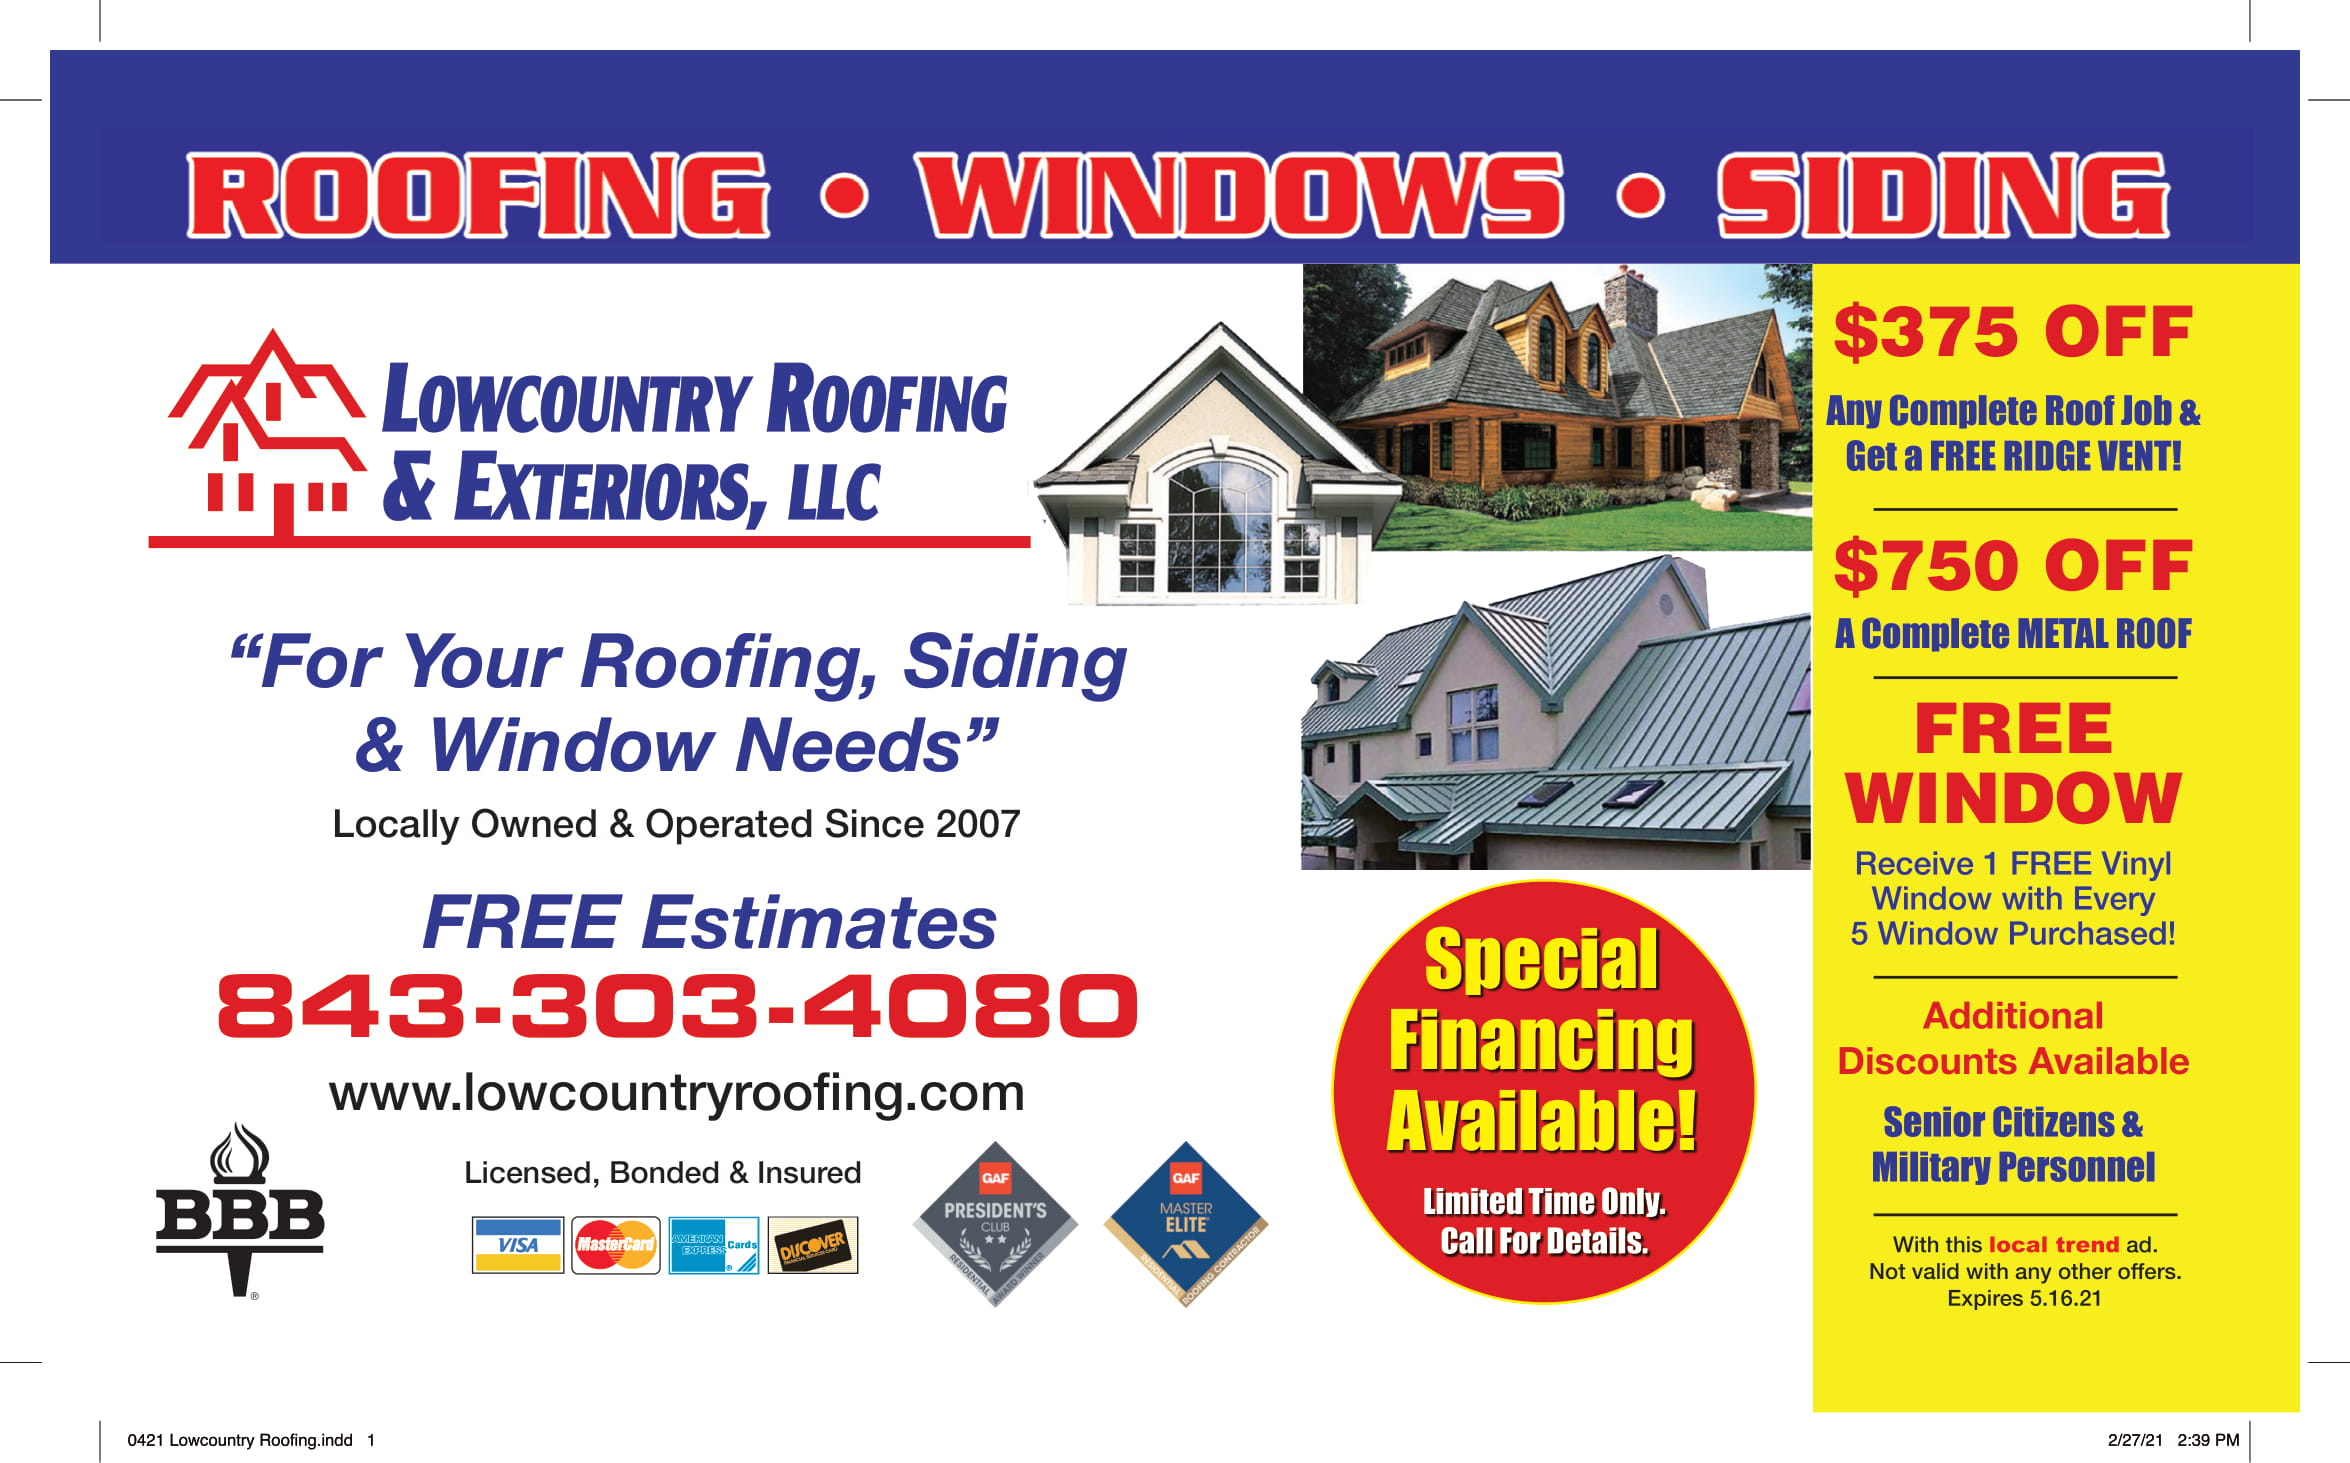 0421 Lowcountry Roofing 1